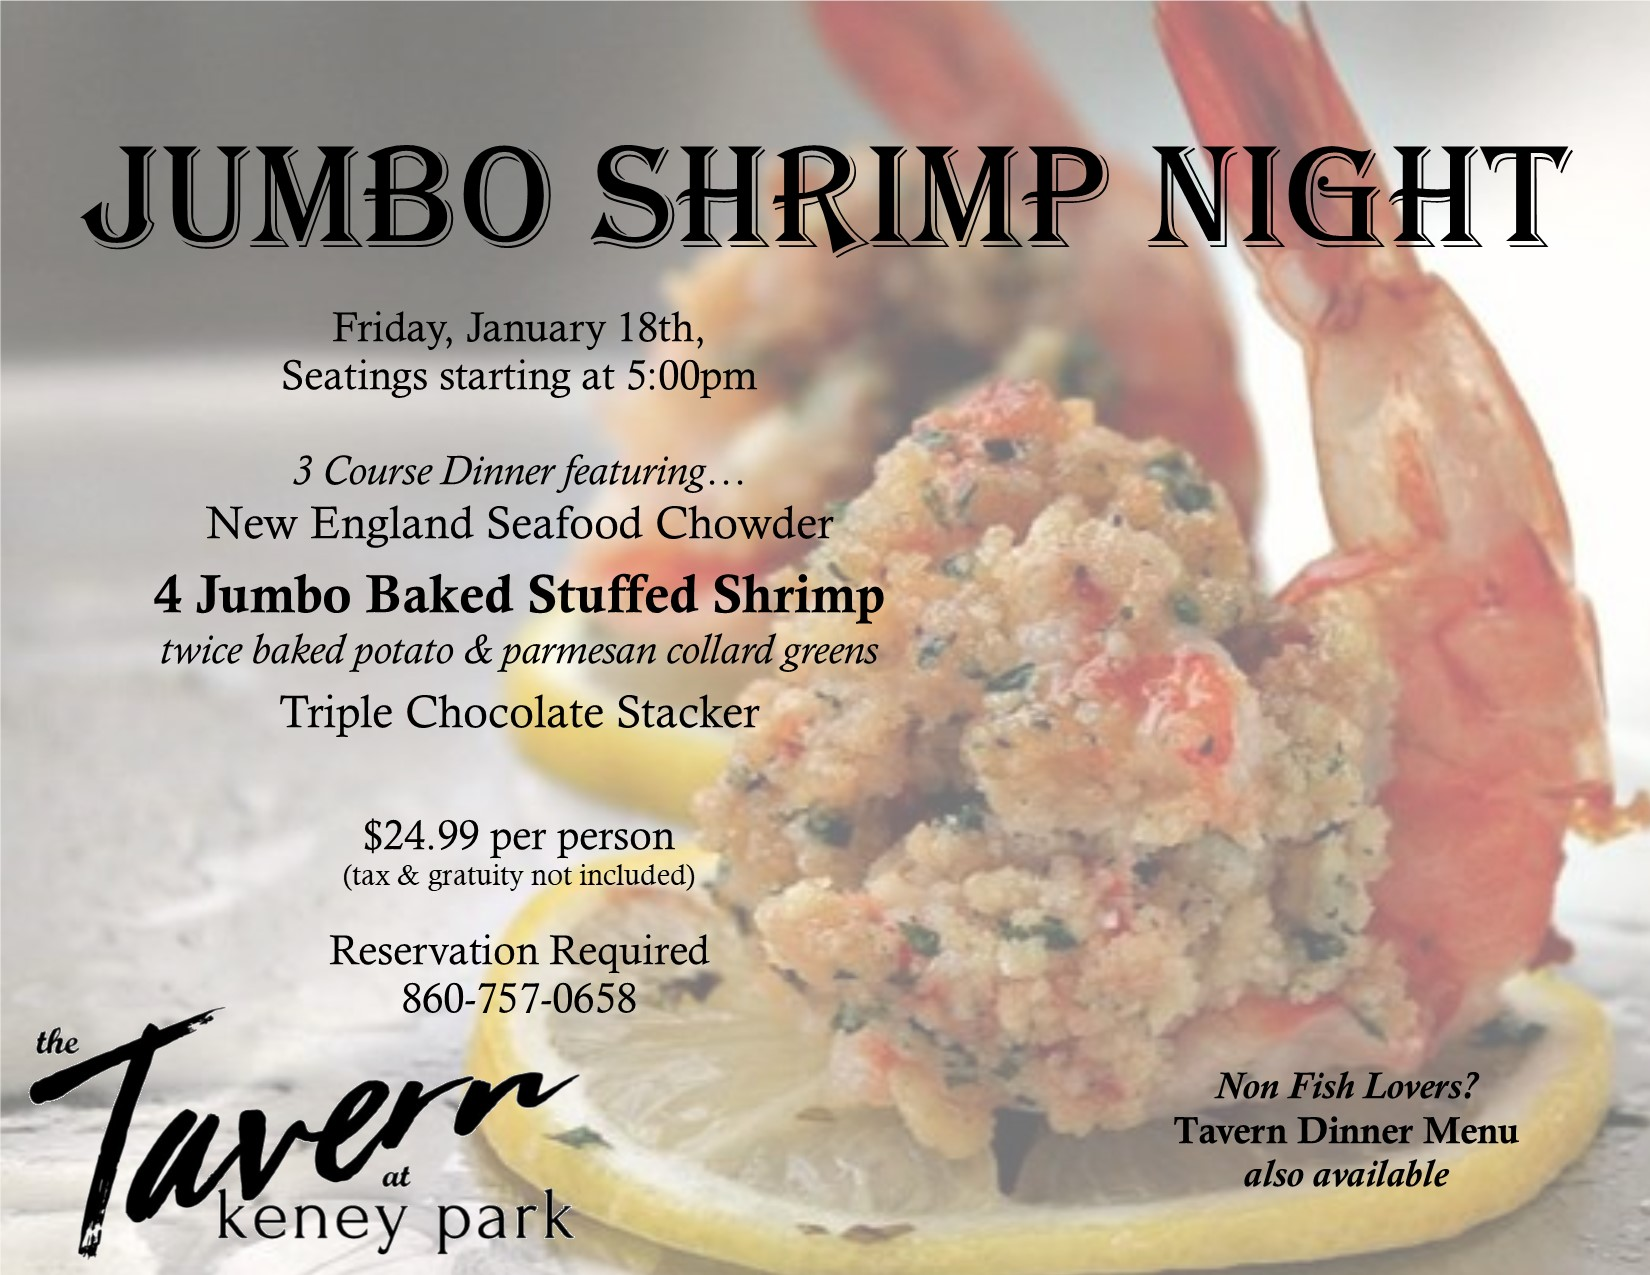 1-18-19 shrimp night.jpg